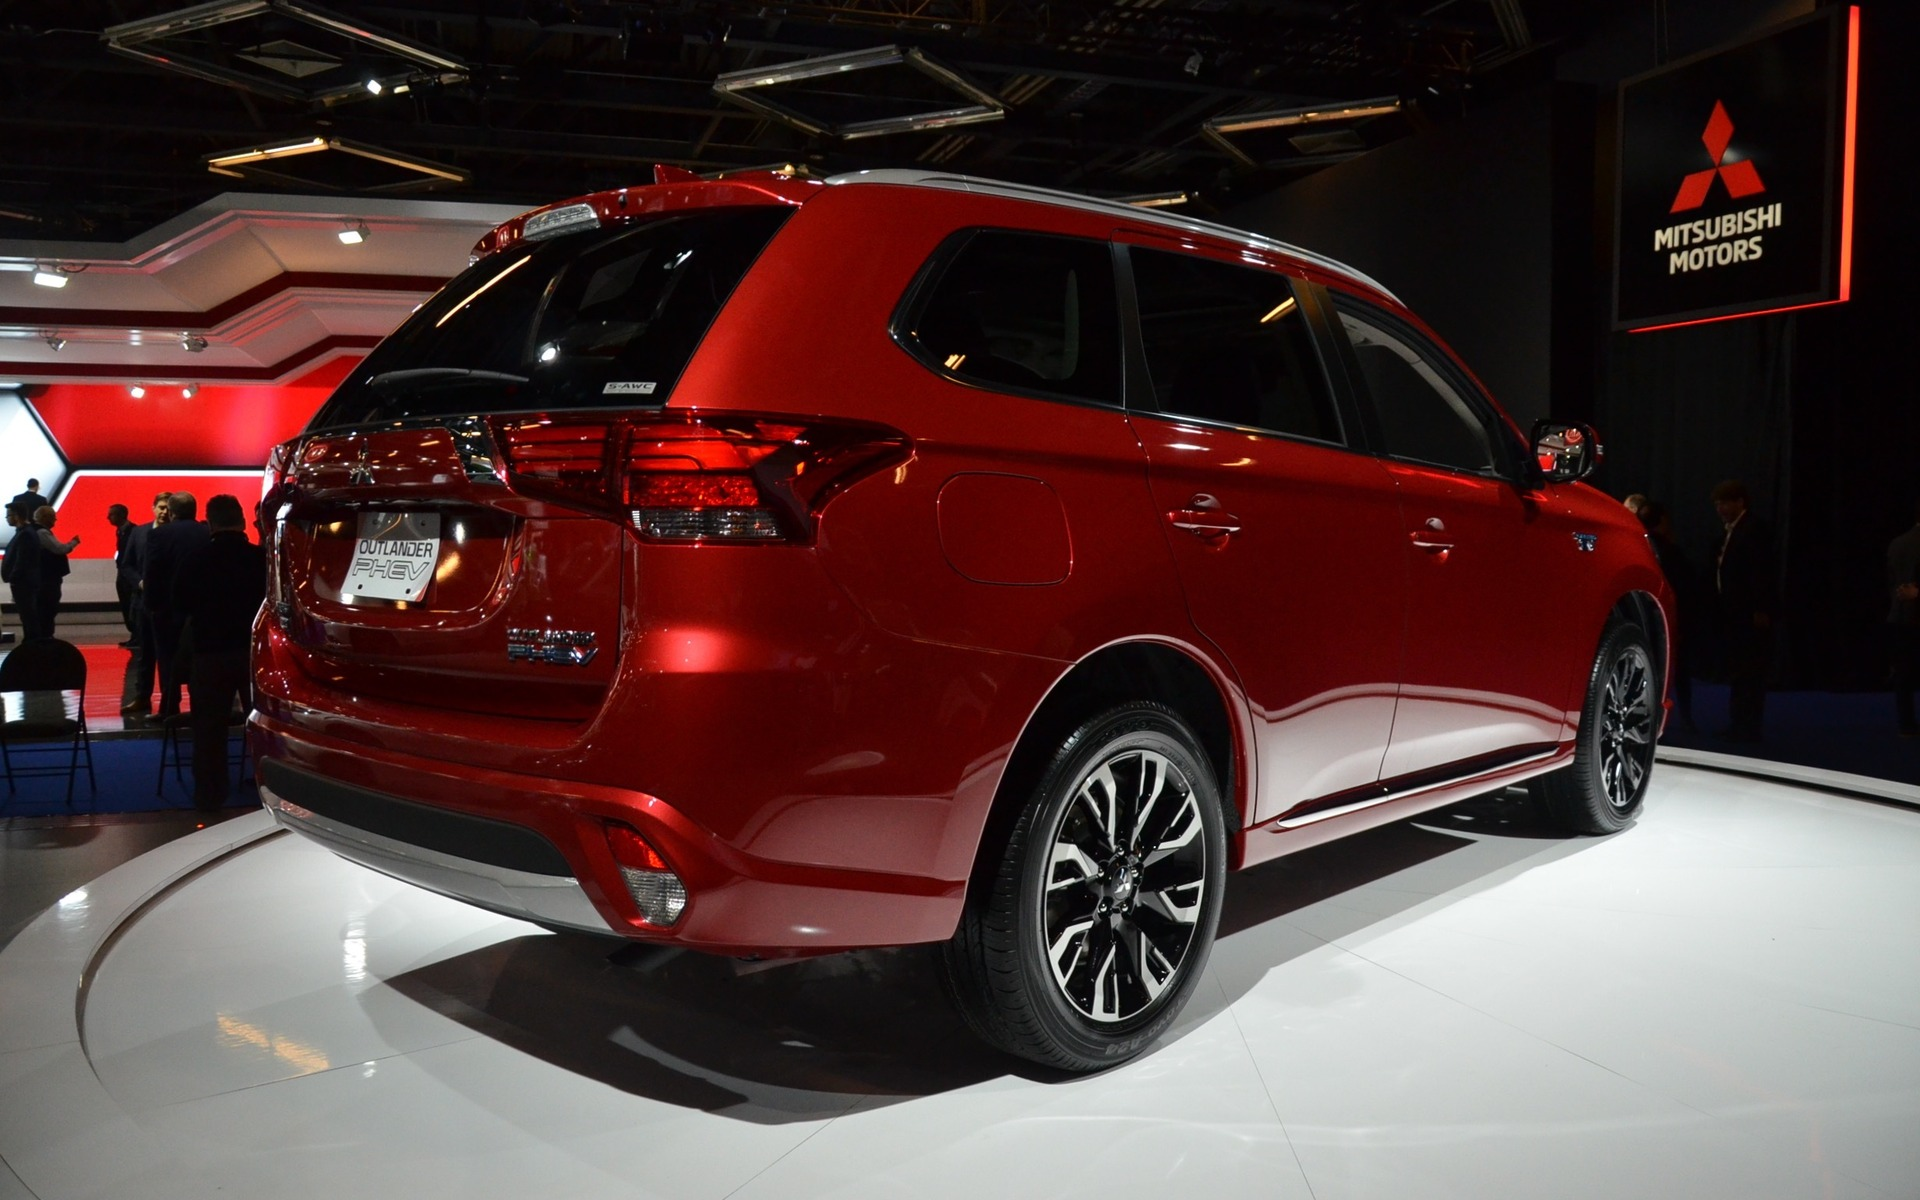 Canadian Premiere: 2018 Mitsubishi Outlander PHEV is the